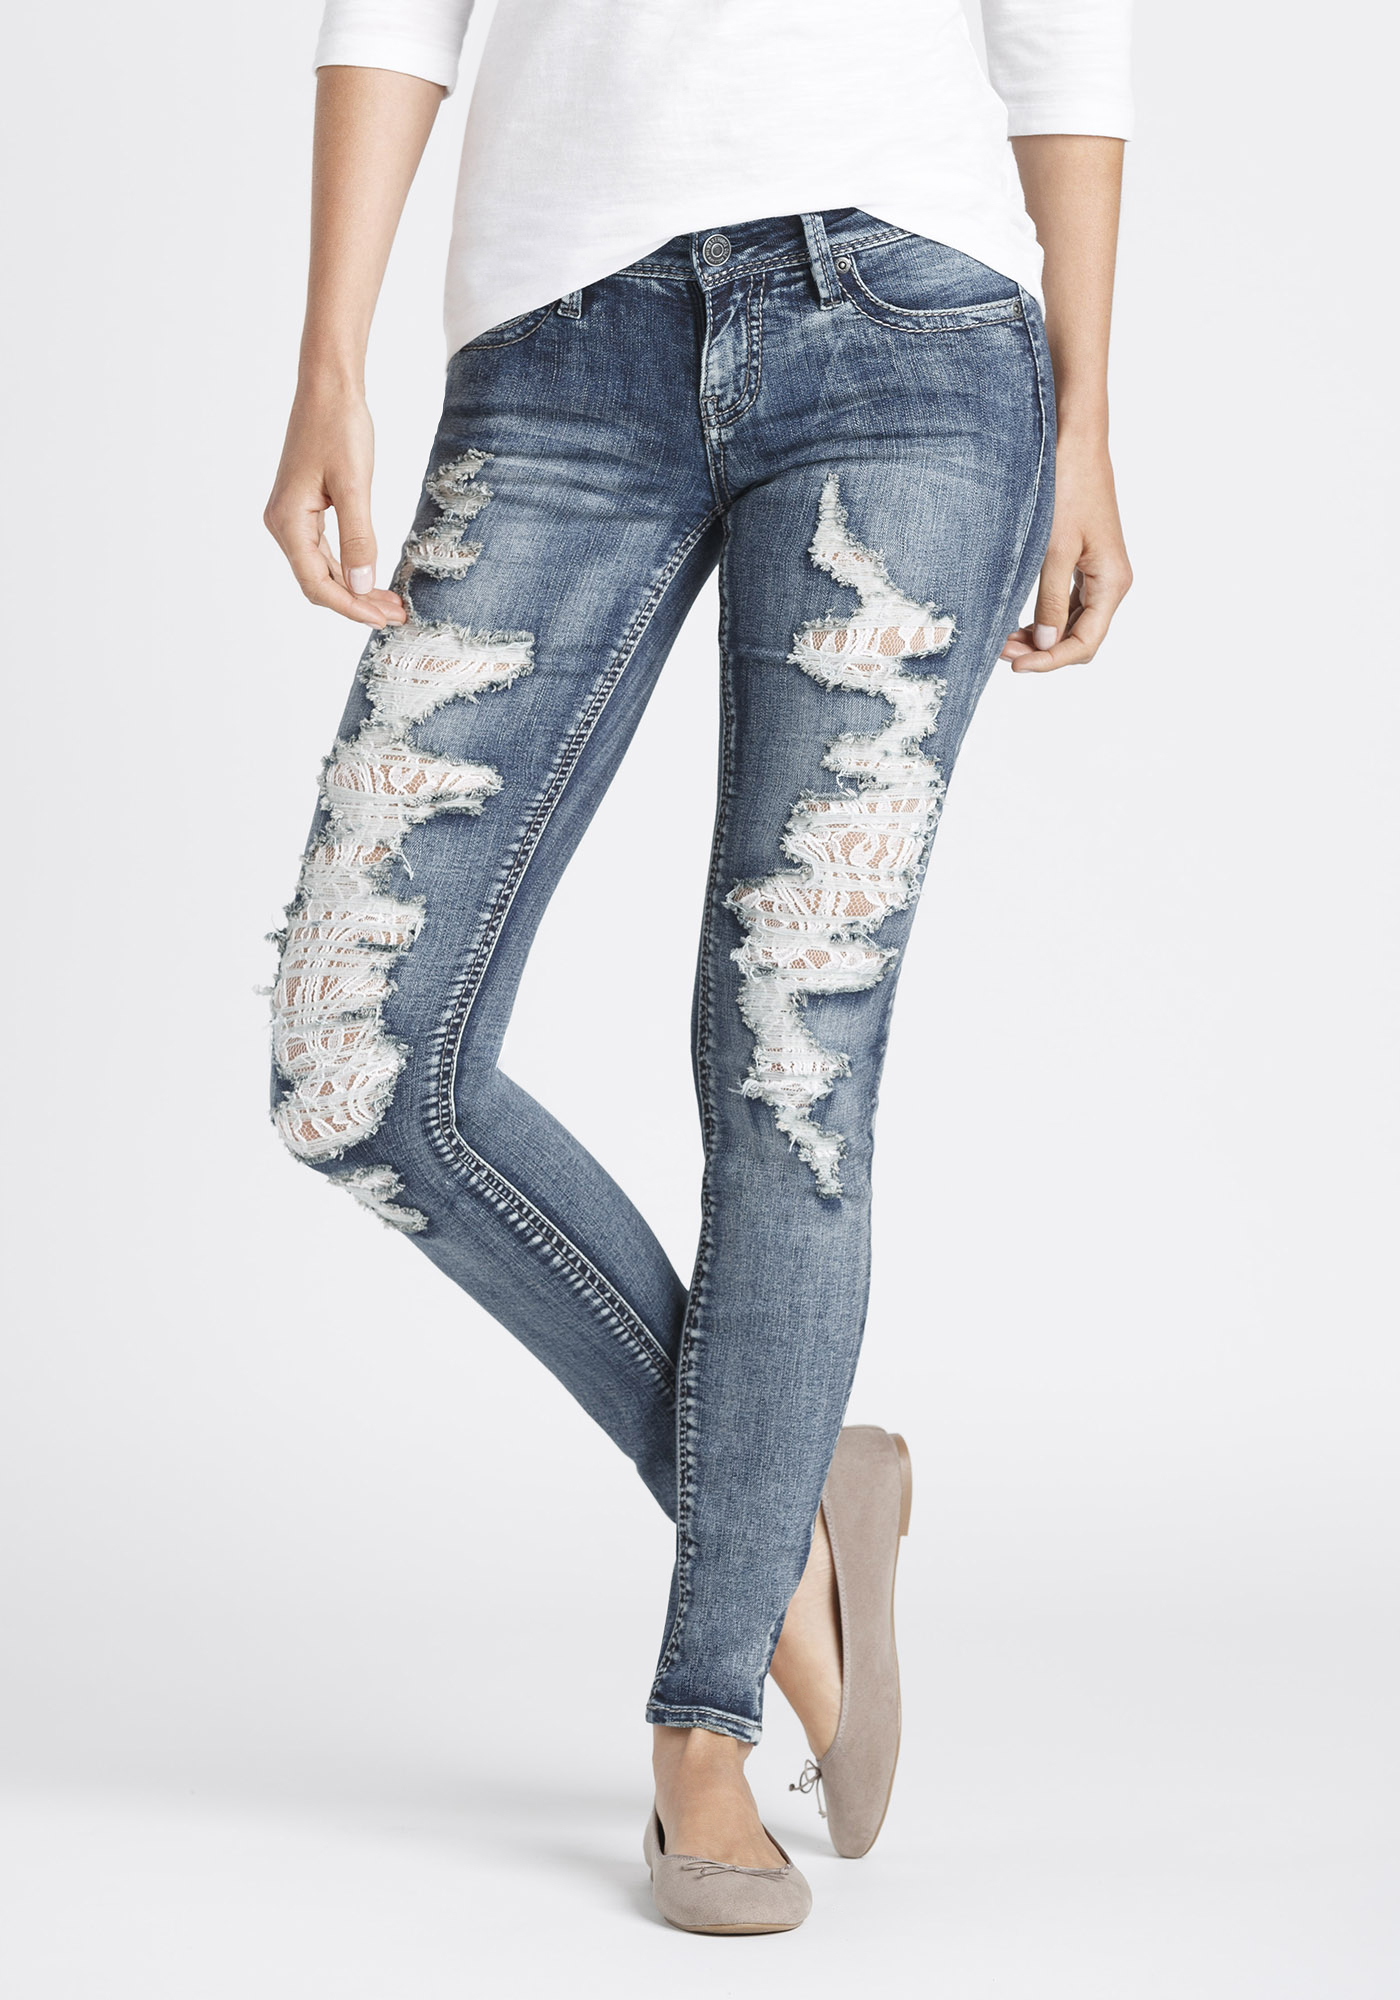 Womens Mid Rise Skinny Jeans   Warehouse One